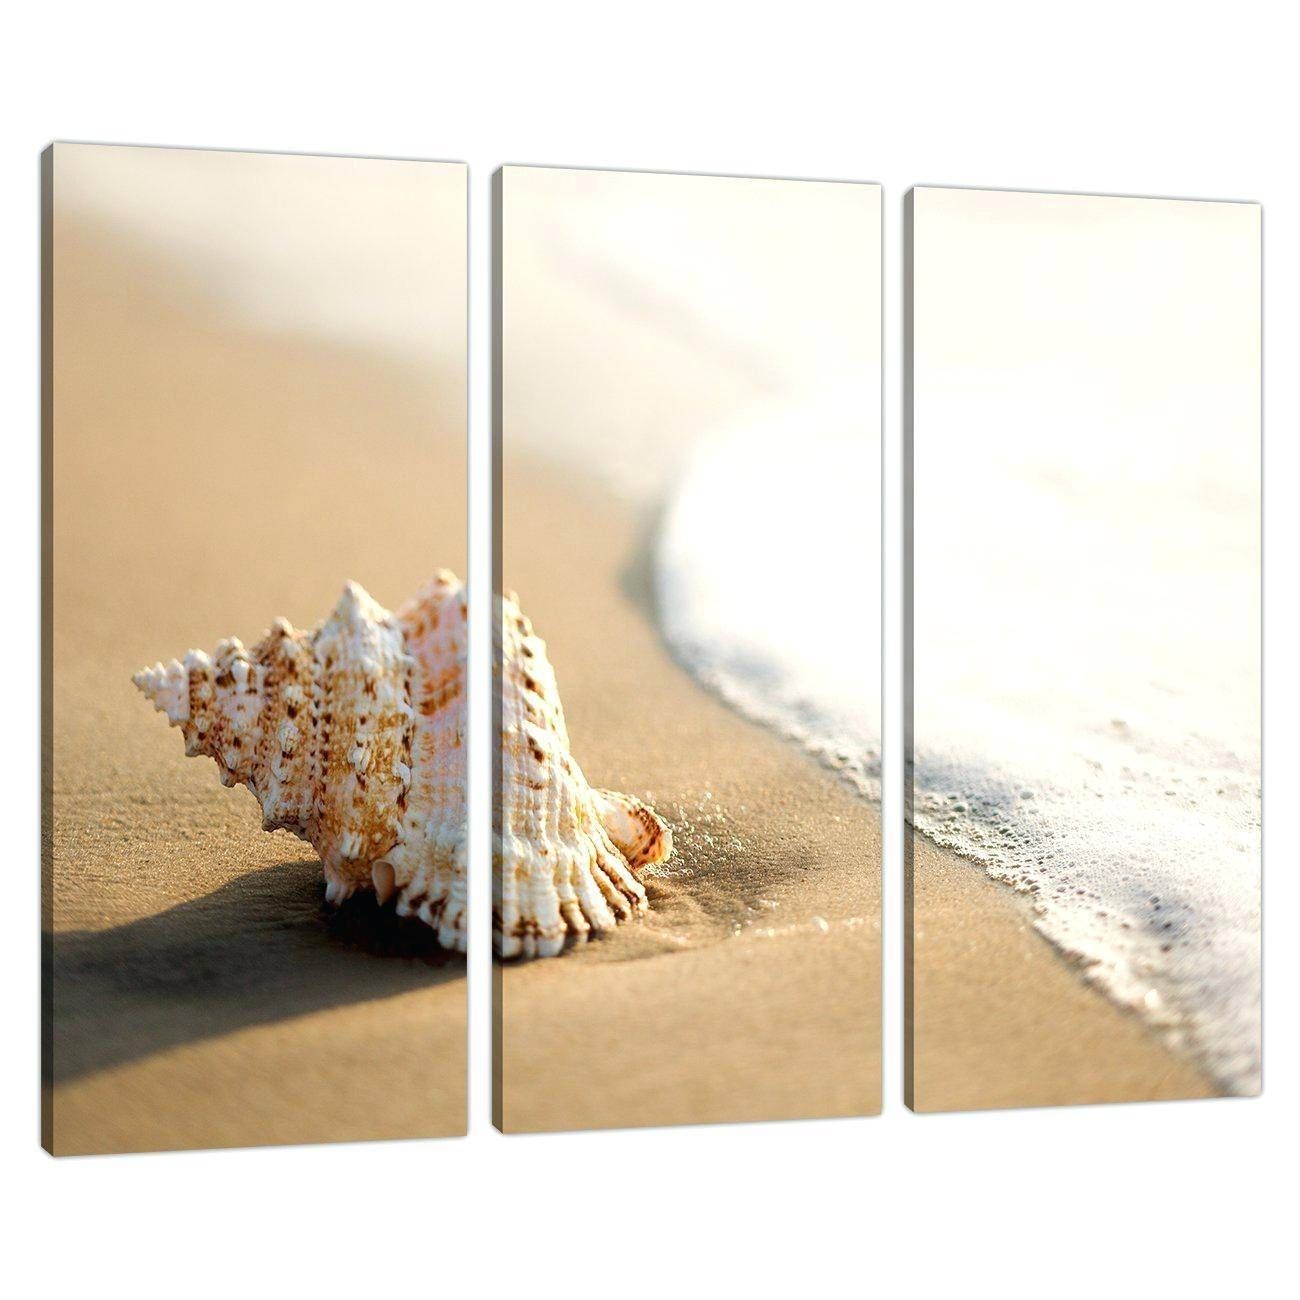 20 Top 3 Piece Beach Wall Art | Wall Art Ideas Inside Most Up To Date 3 Piece Beach Wall Art (View 3 of 30)